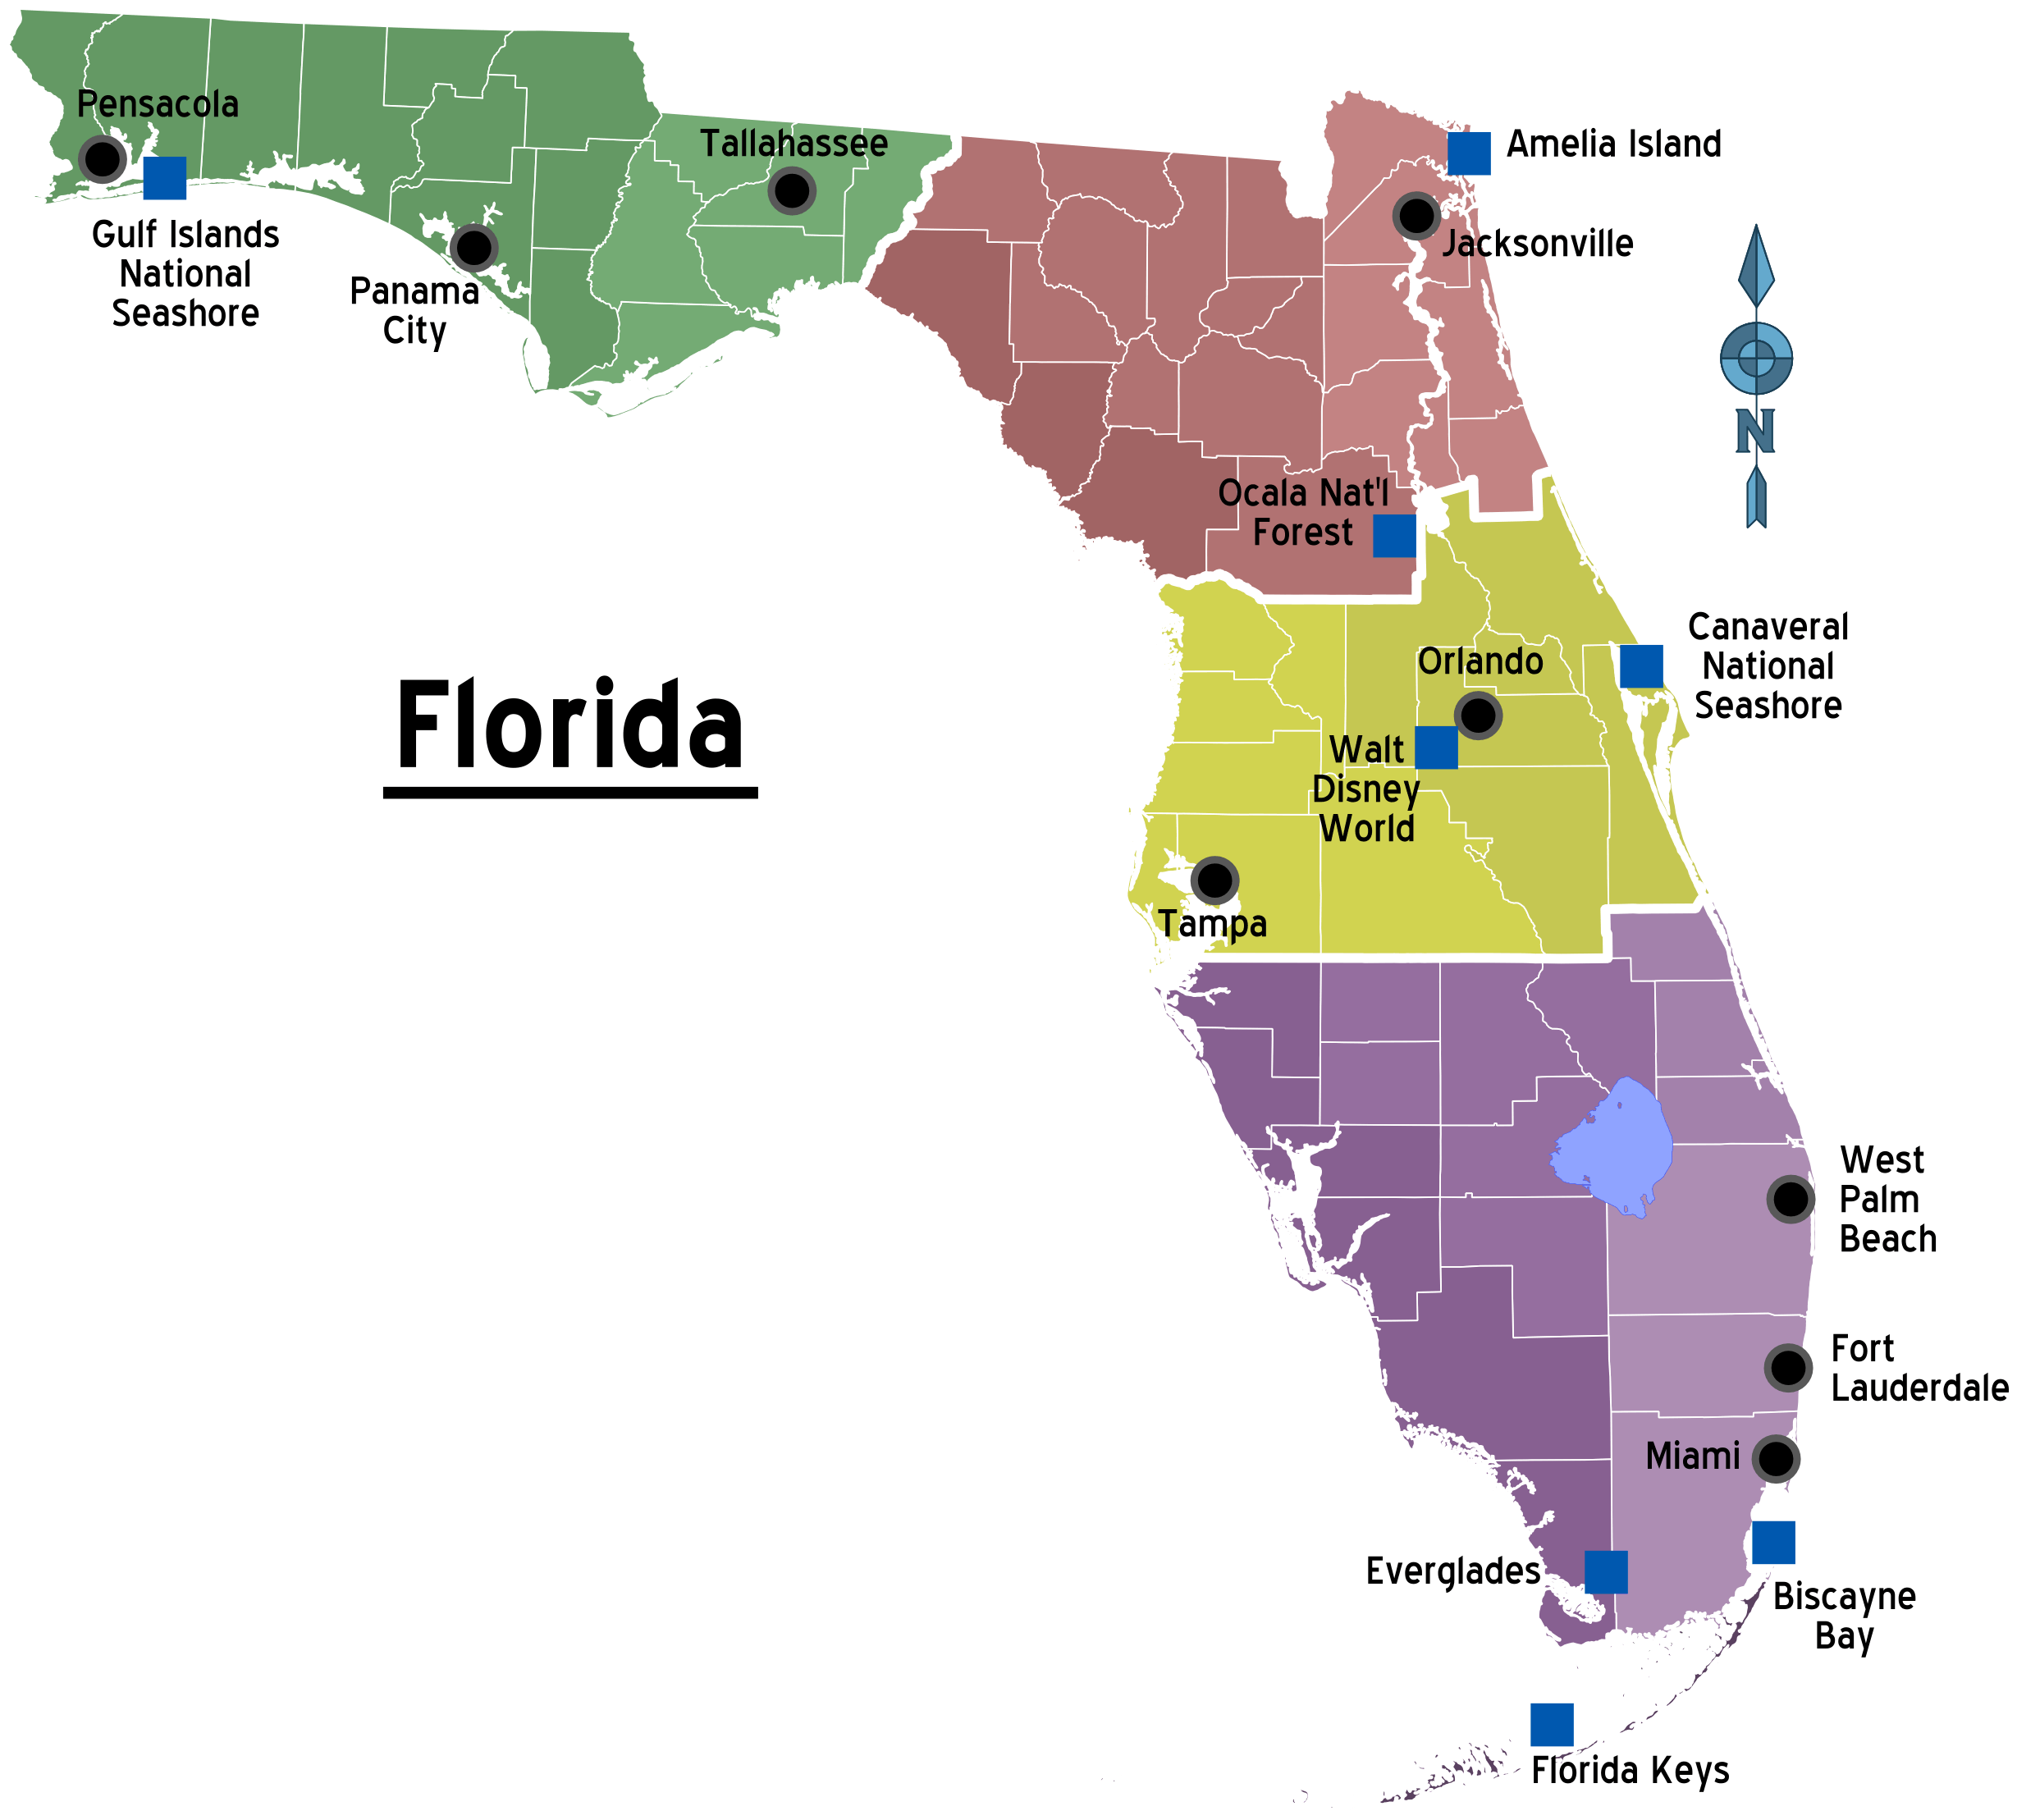 Florida Regions Map With Cities Florida Travel Guide Florida County Map Florida Travel